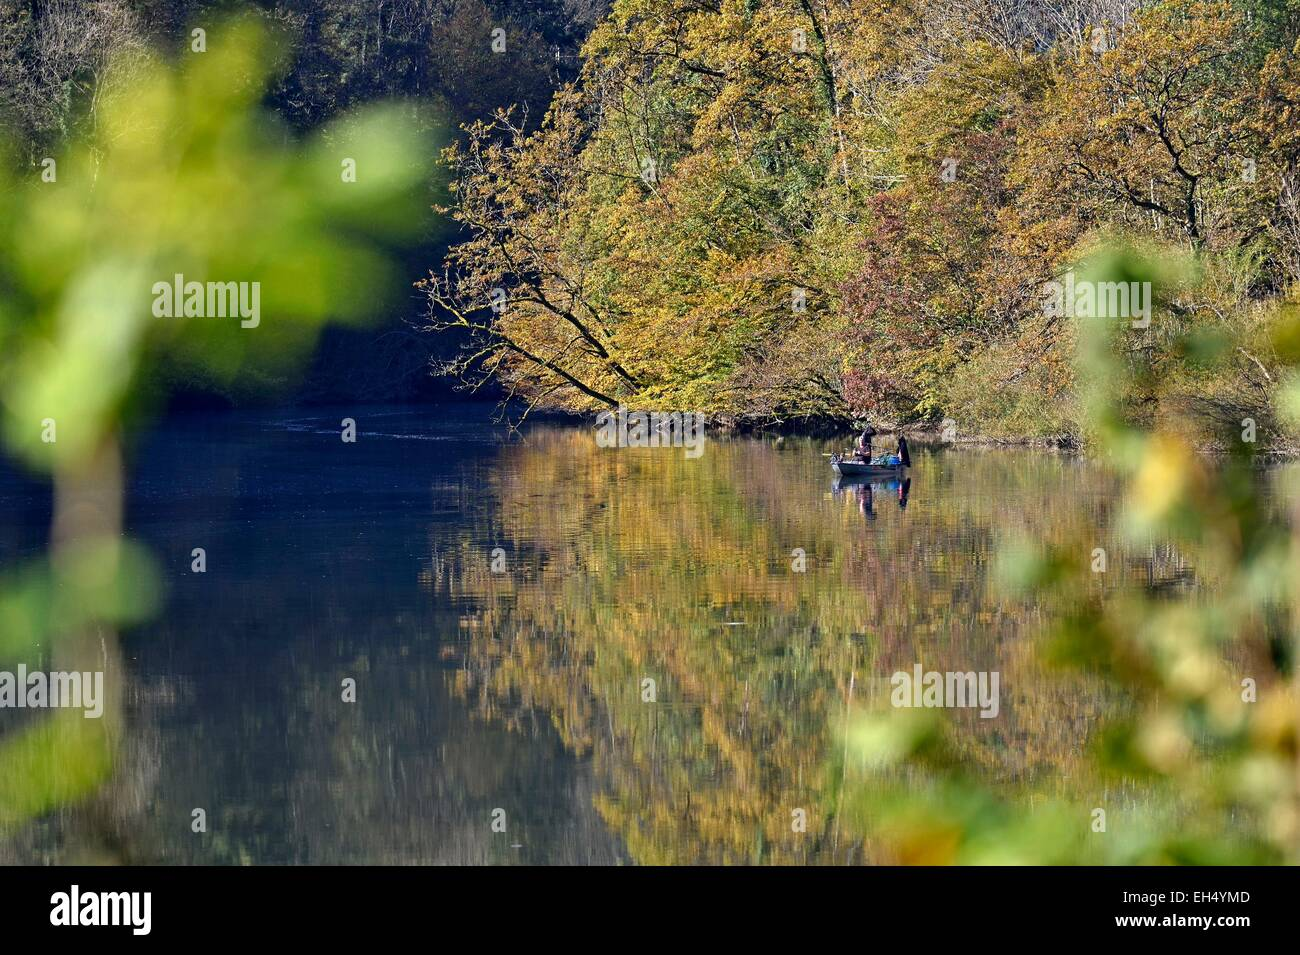 France, Doubs, Glere, Doubs valley to Switzerland in autumn border and boat fishermen - Stock Image